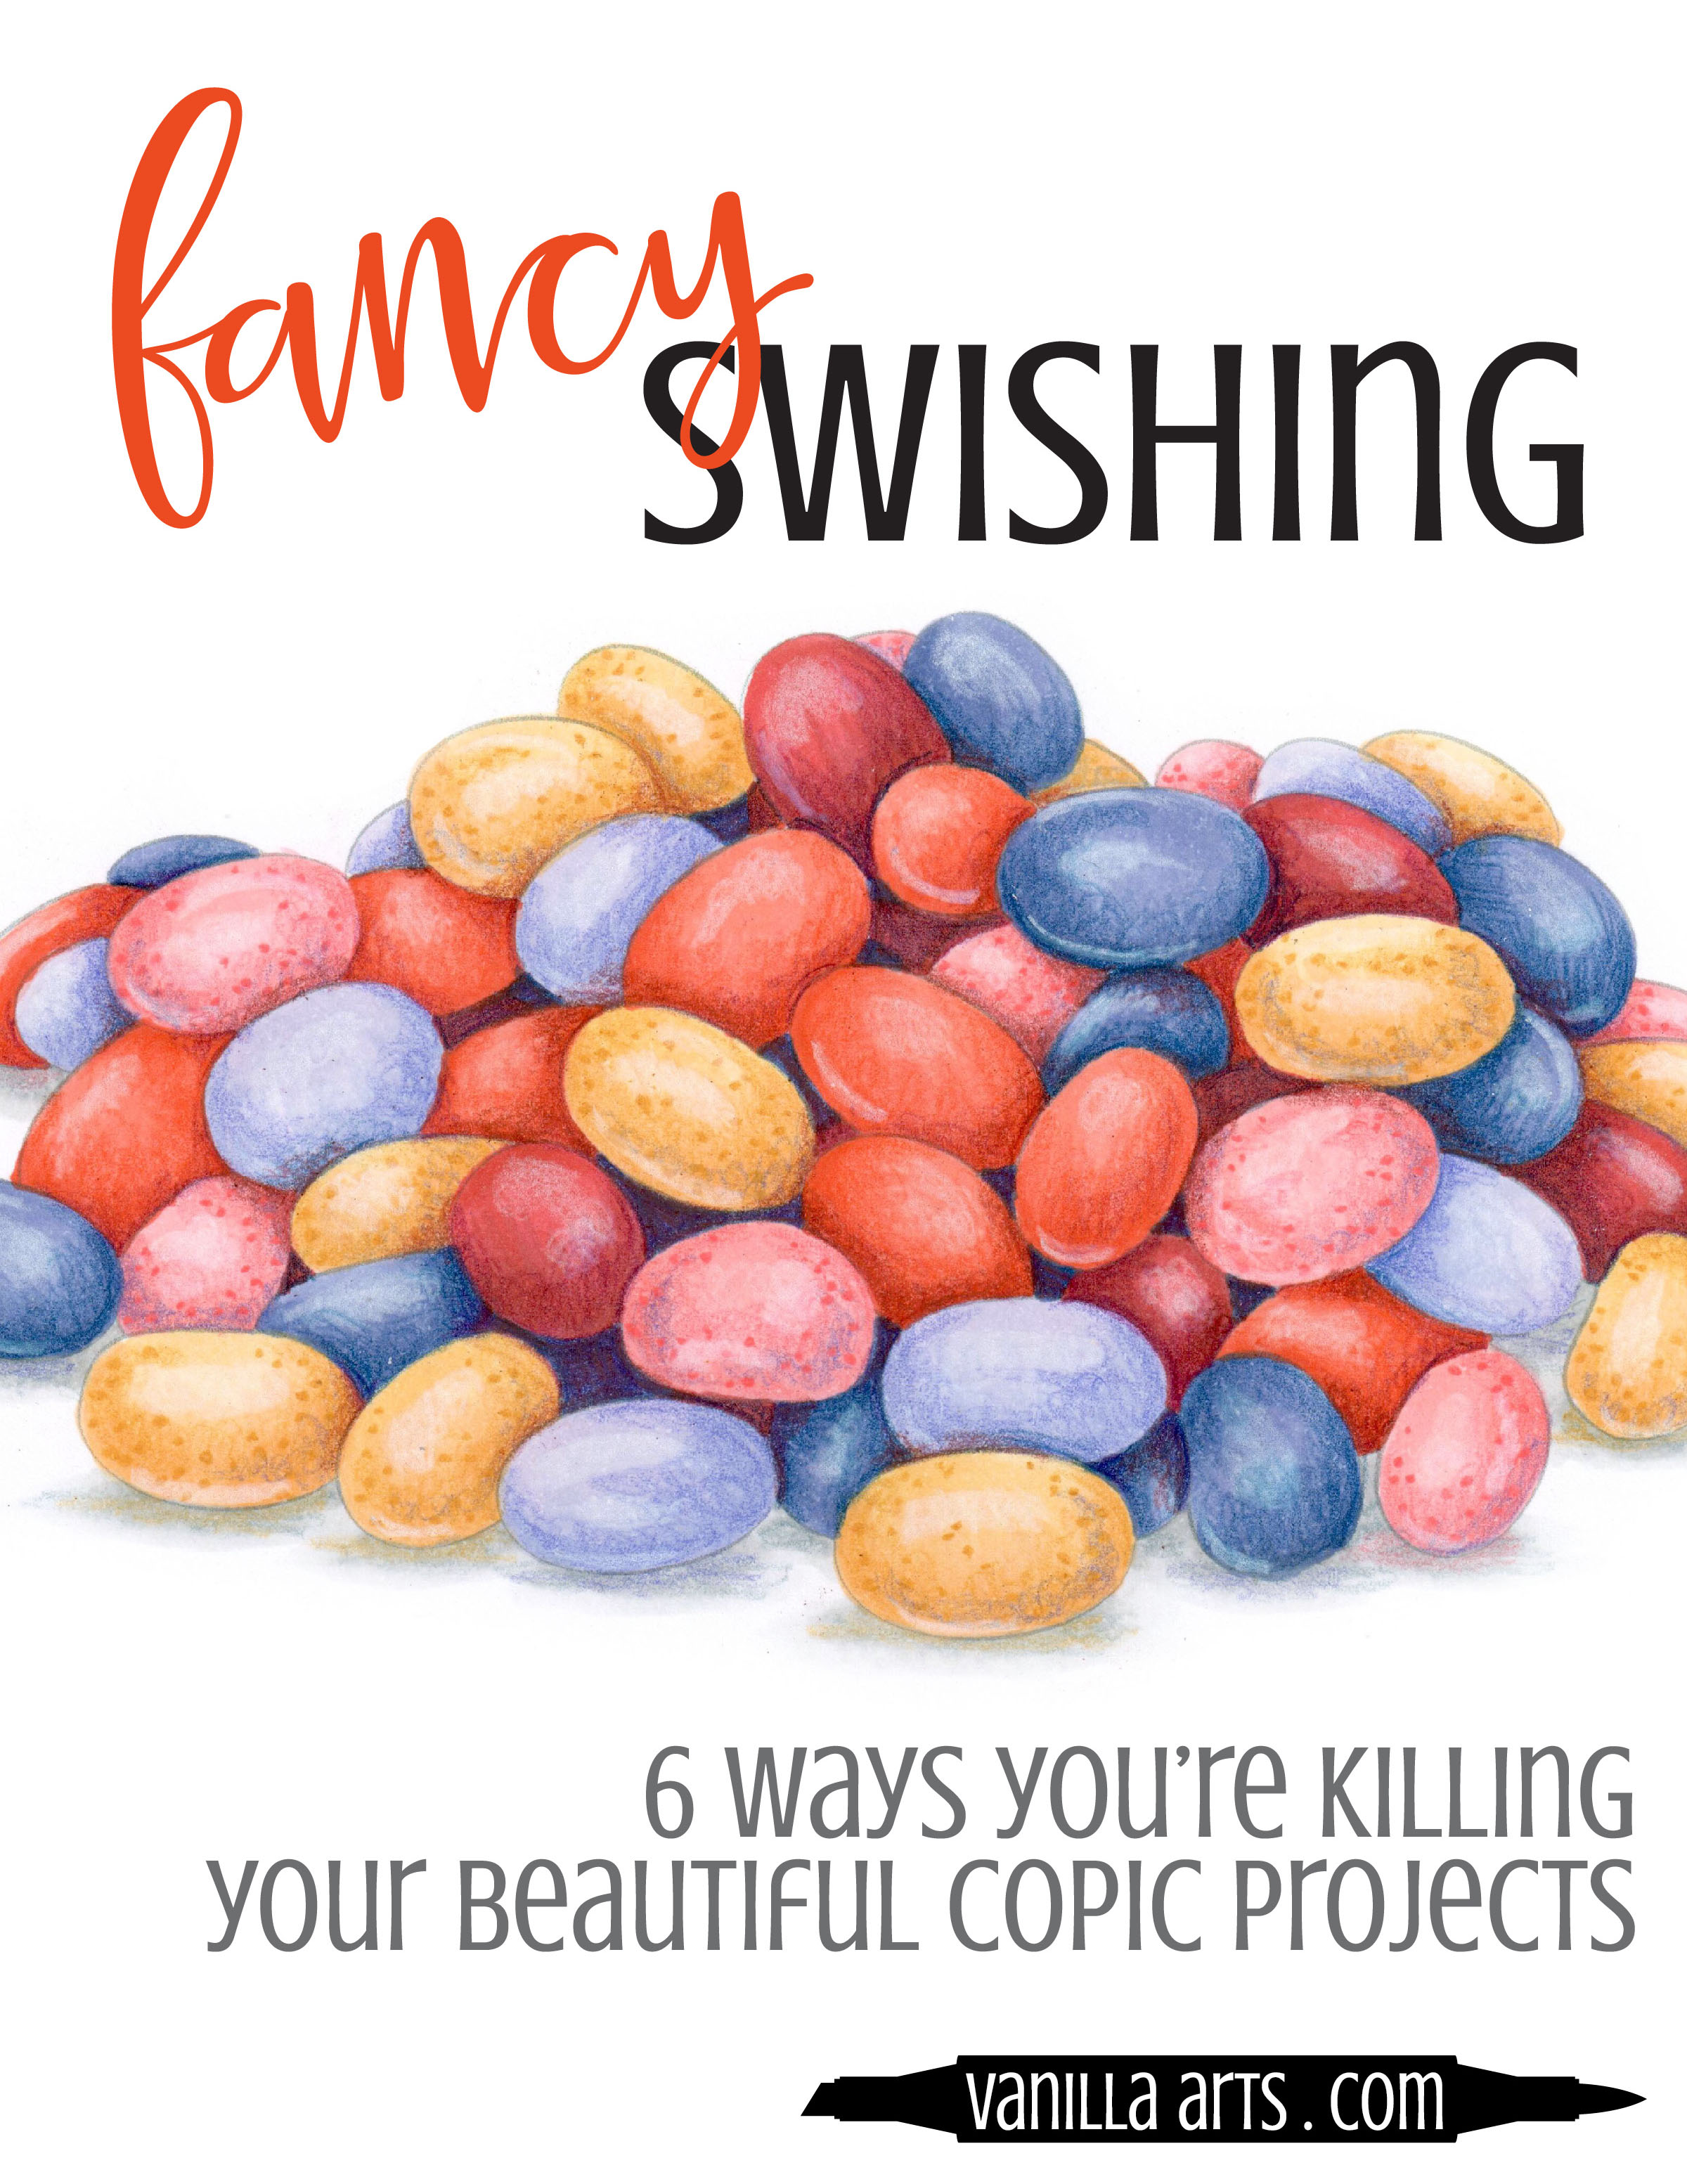 Are you killing your Copic Coloring with too much love and attention? 6 ways you are damaging your project and how to prevent overcoloring. | VanillaArts.com